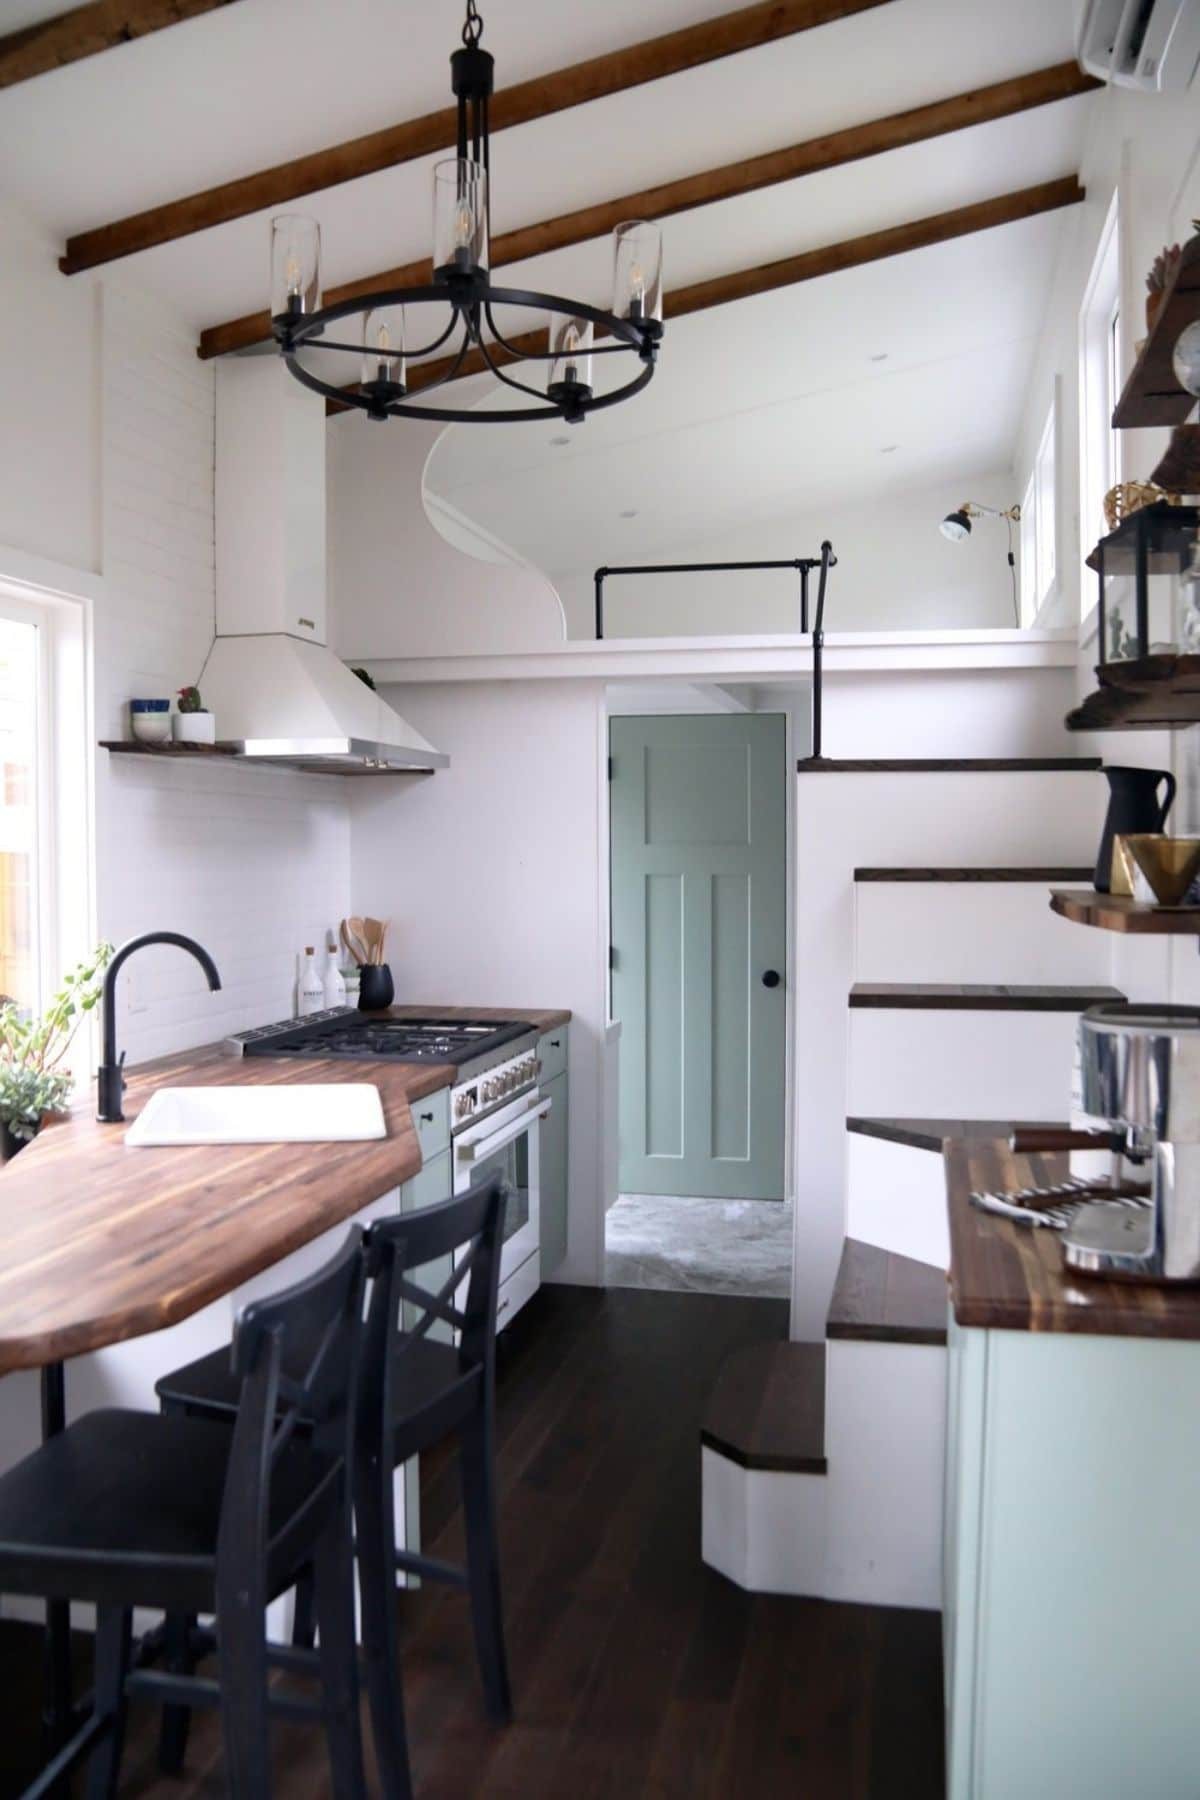 Wooden countertop with white and green cabinets in kitchen